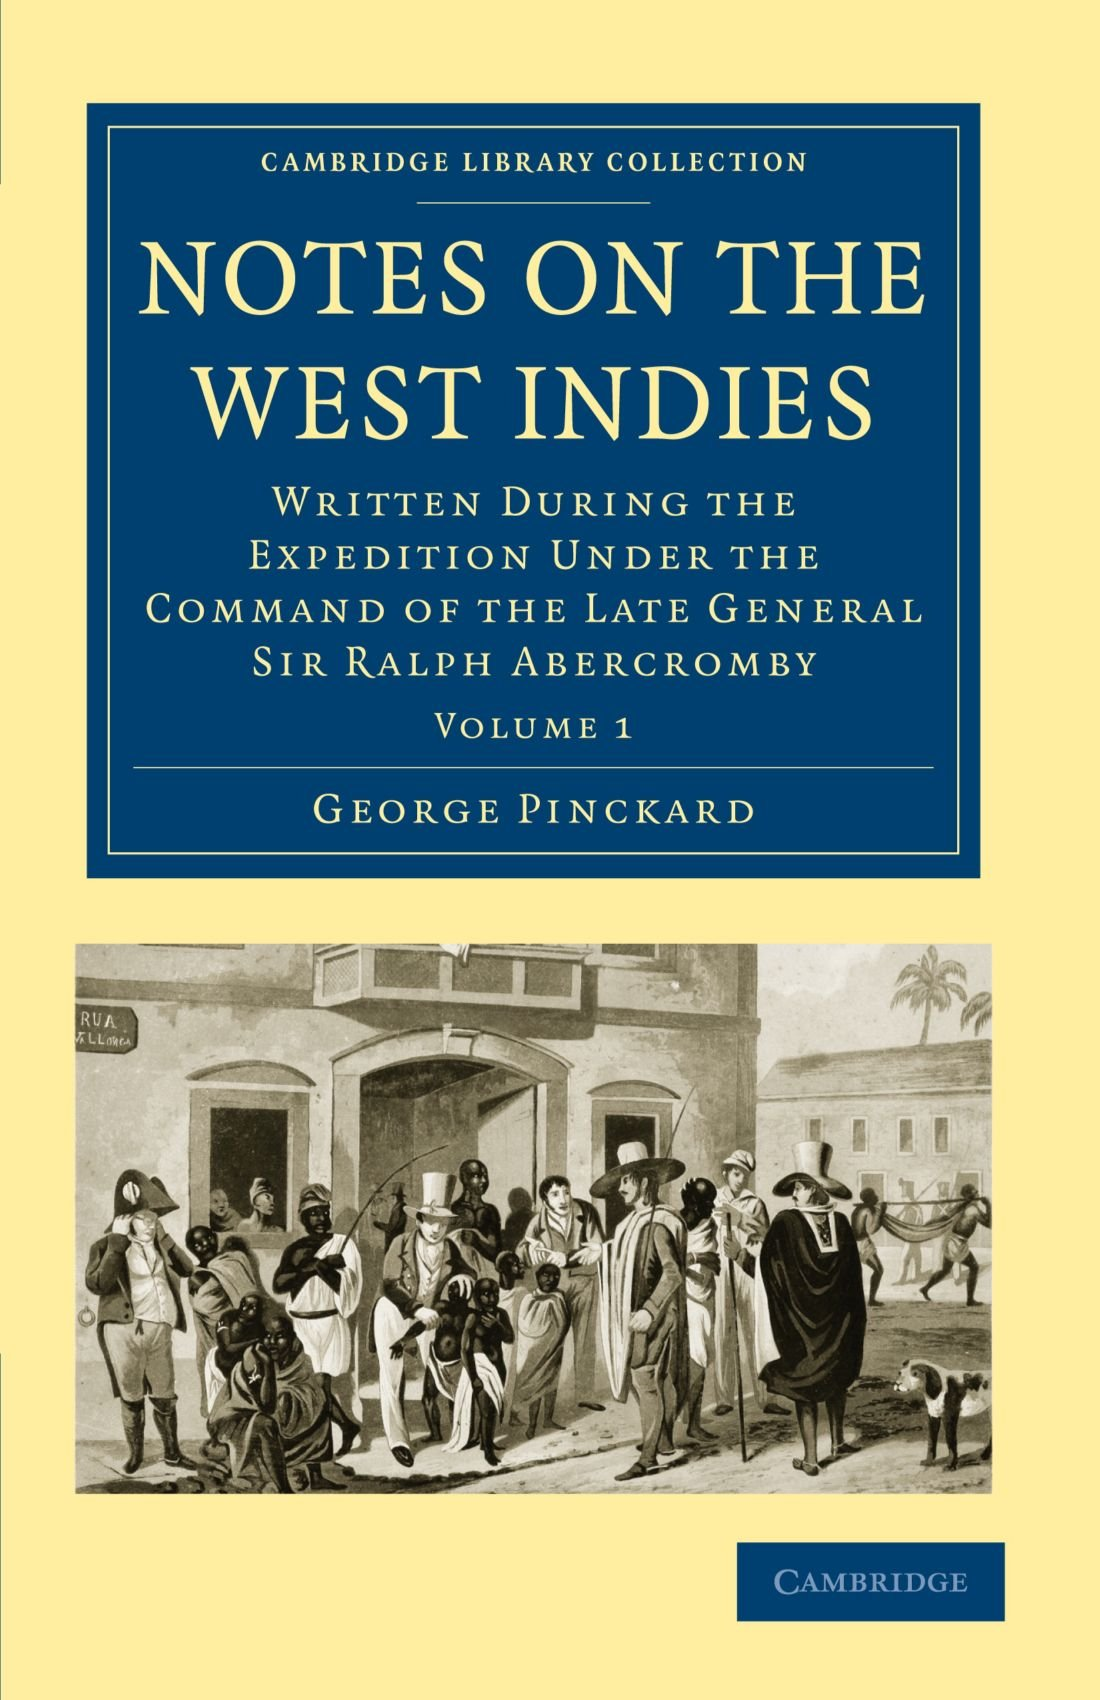 Notes on the West Indies: Written during the Expedition under the Command of the Late General Sir Ralph Abercromby (Cambridge Library Collection - Slavery and Abolition) (Volume 1) ebook